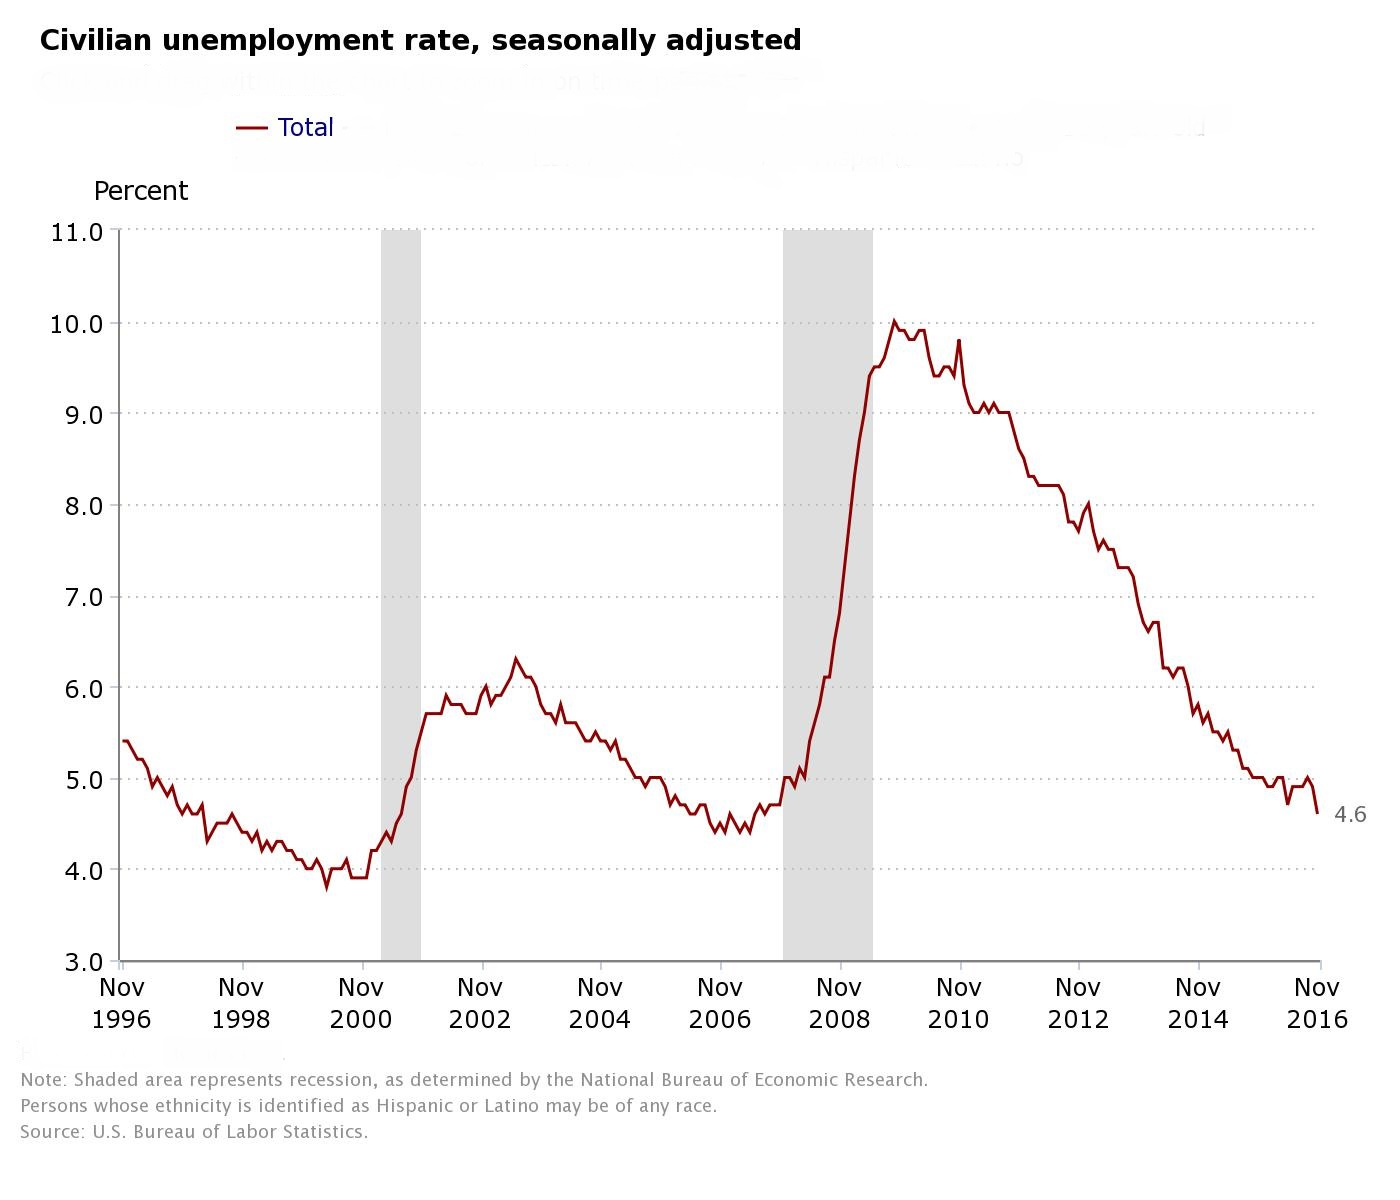 USA unemployment rate hit nine-year low in November